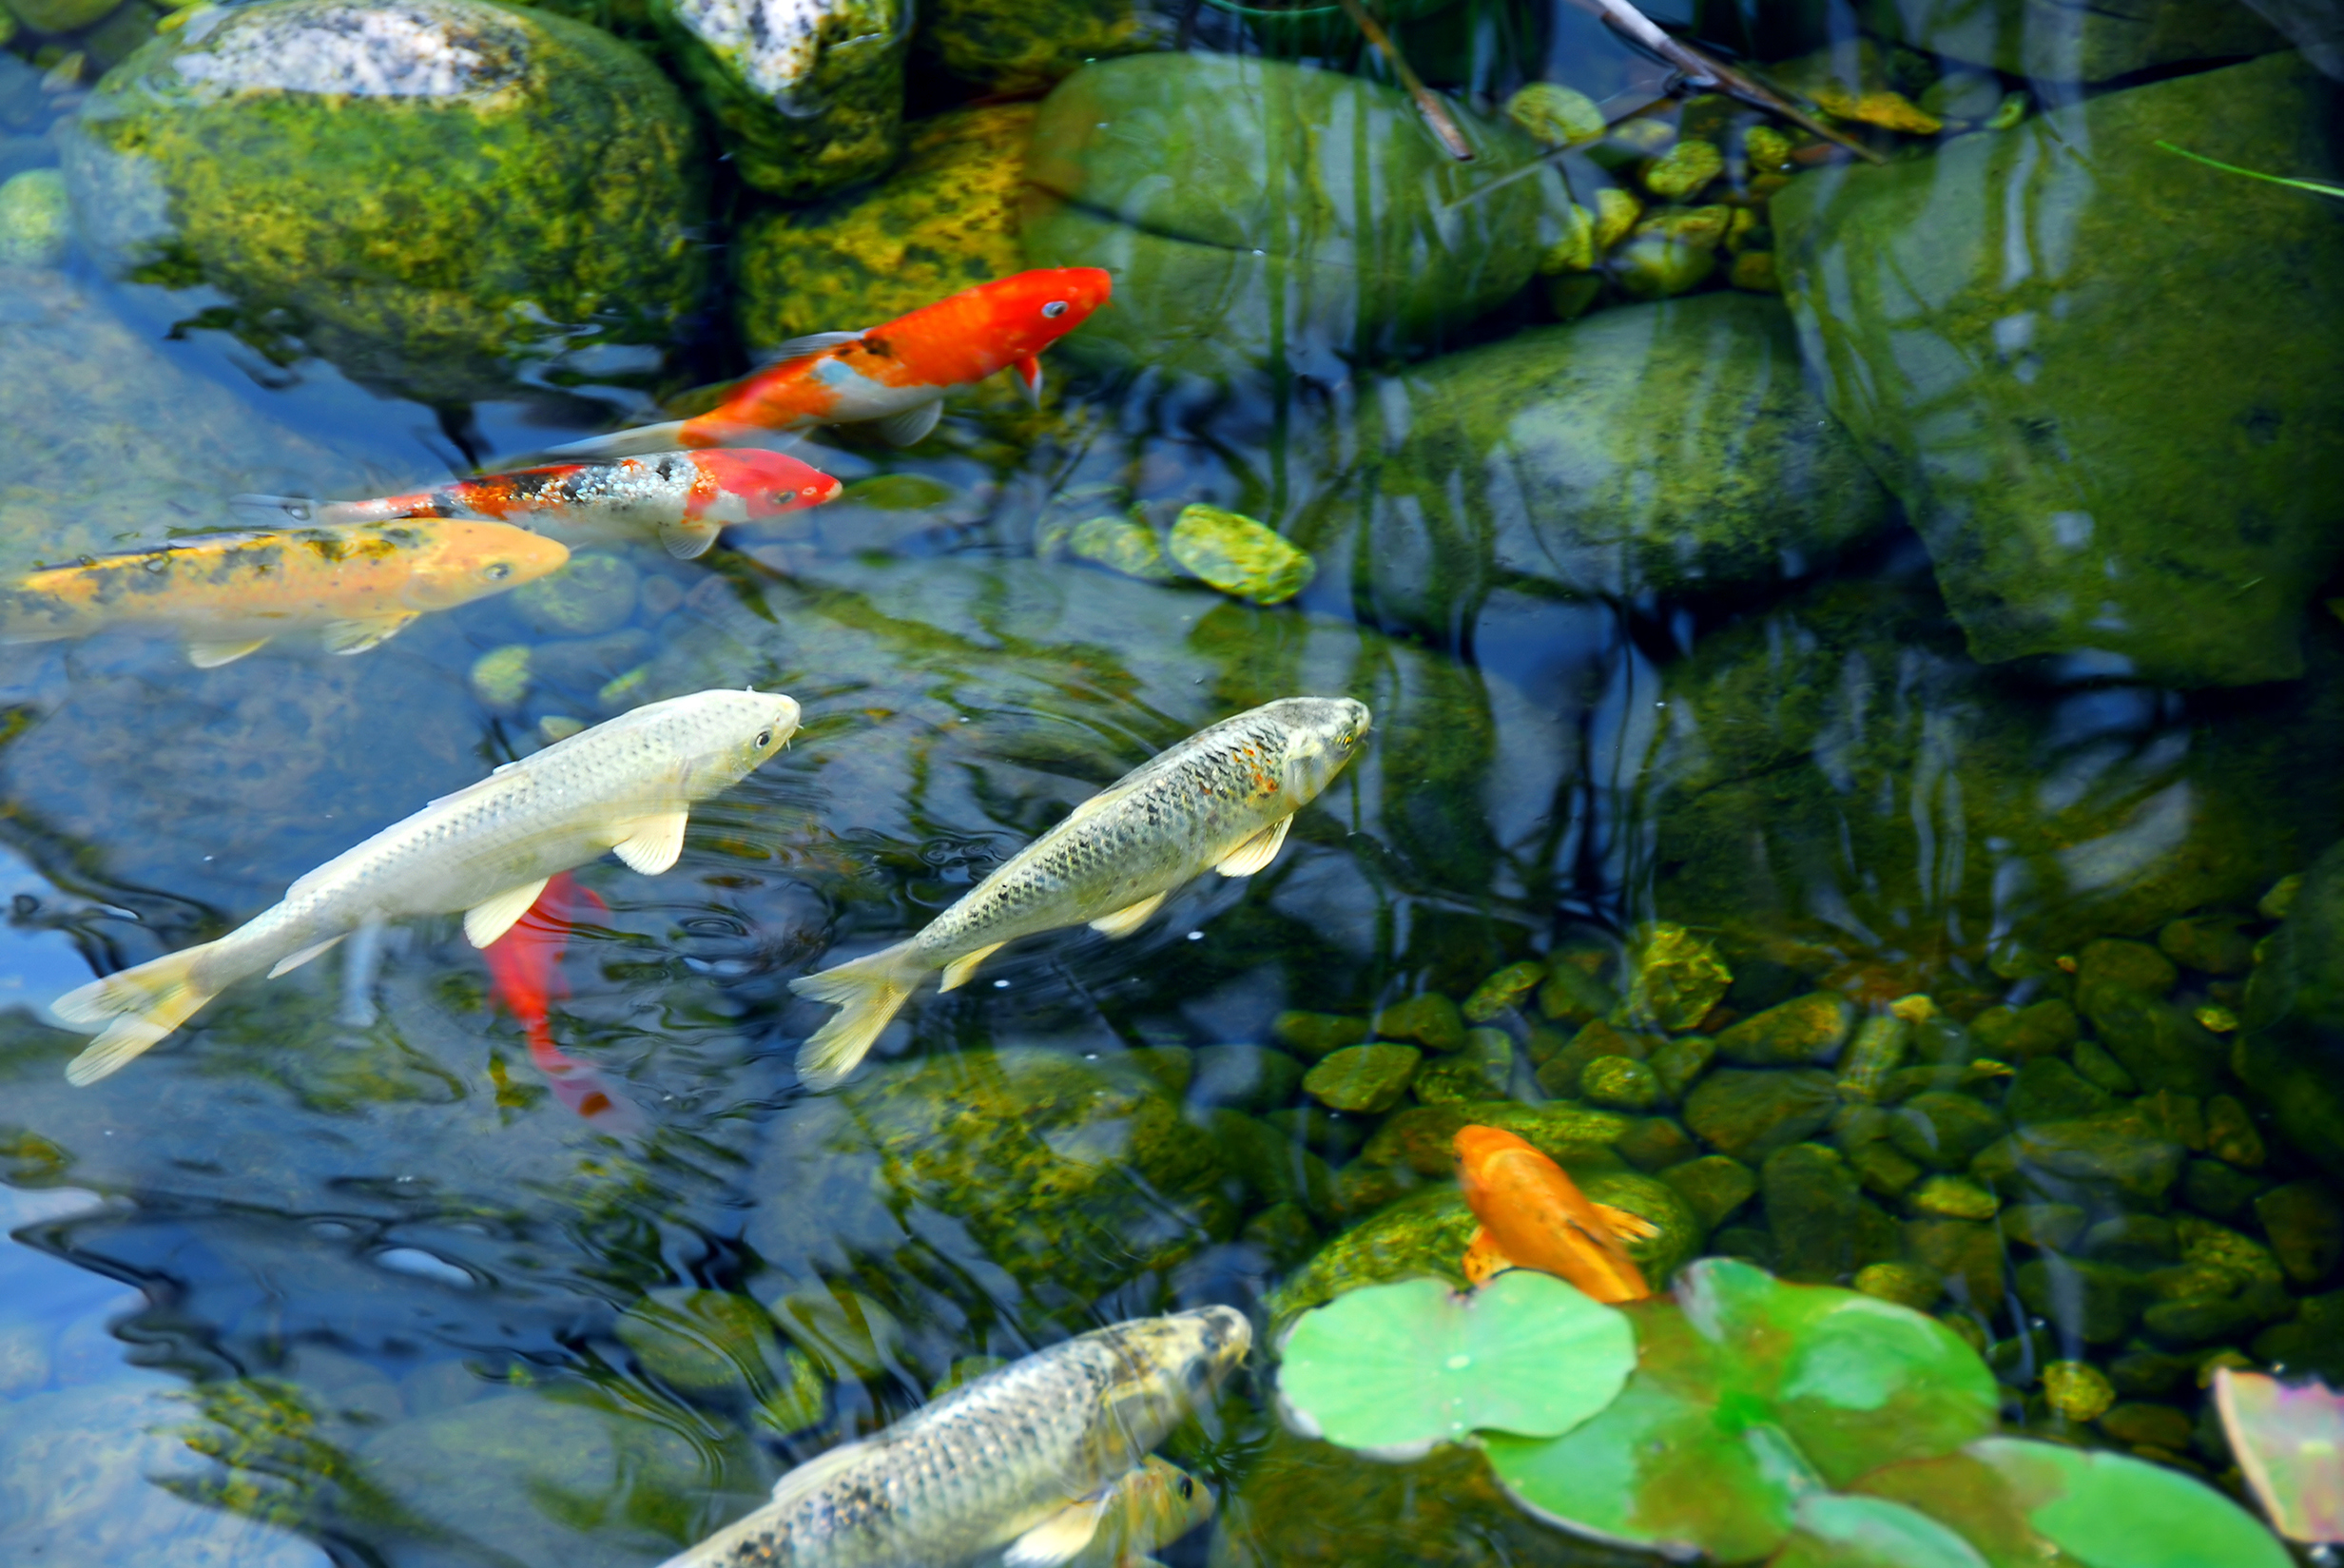 Koi carp in a pond. (Thinkstock/PA)